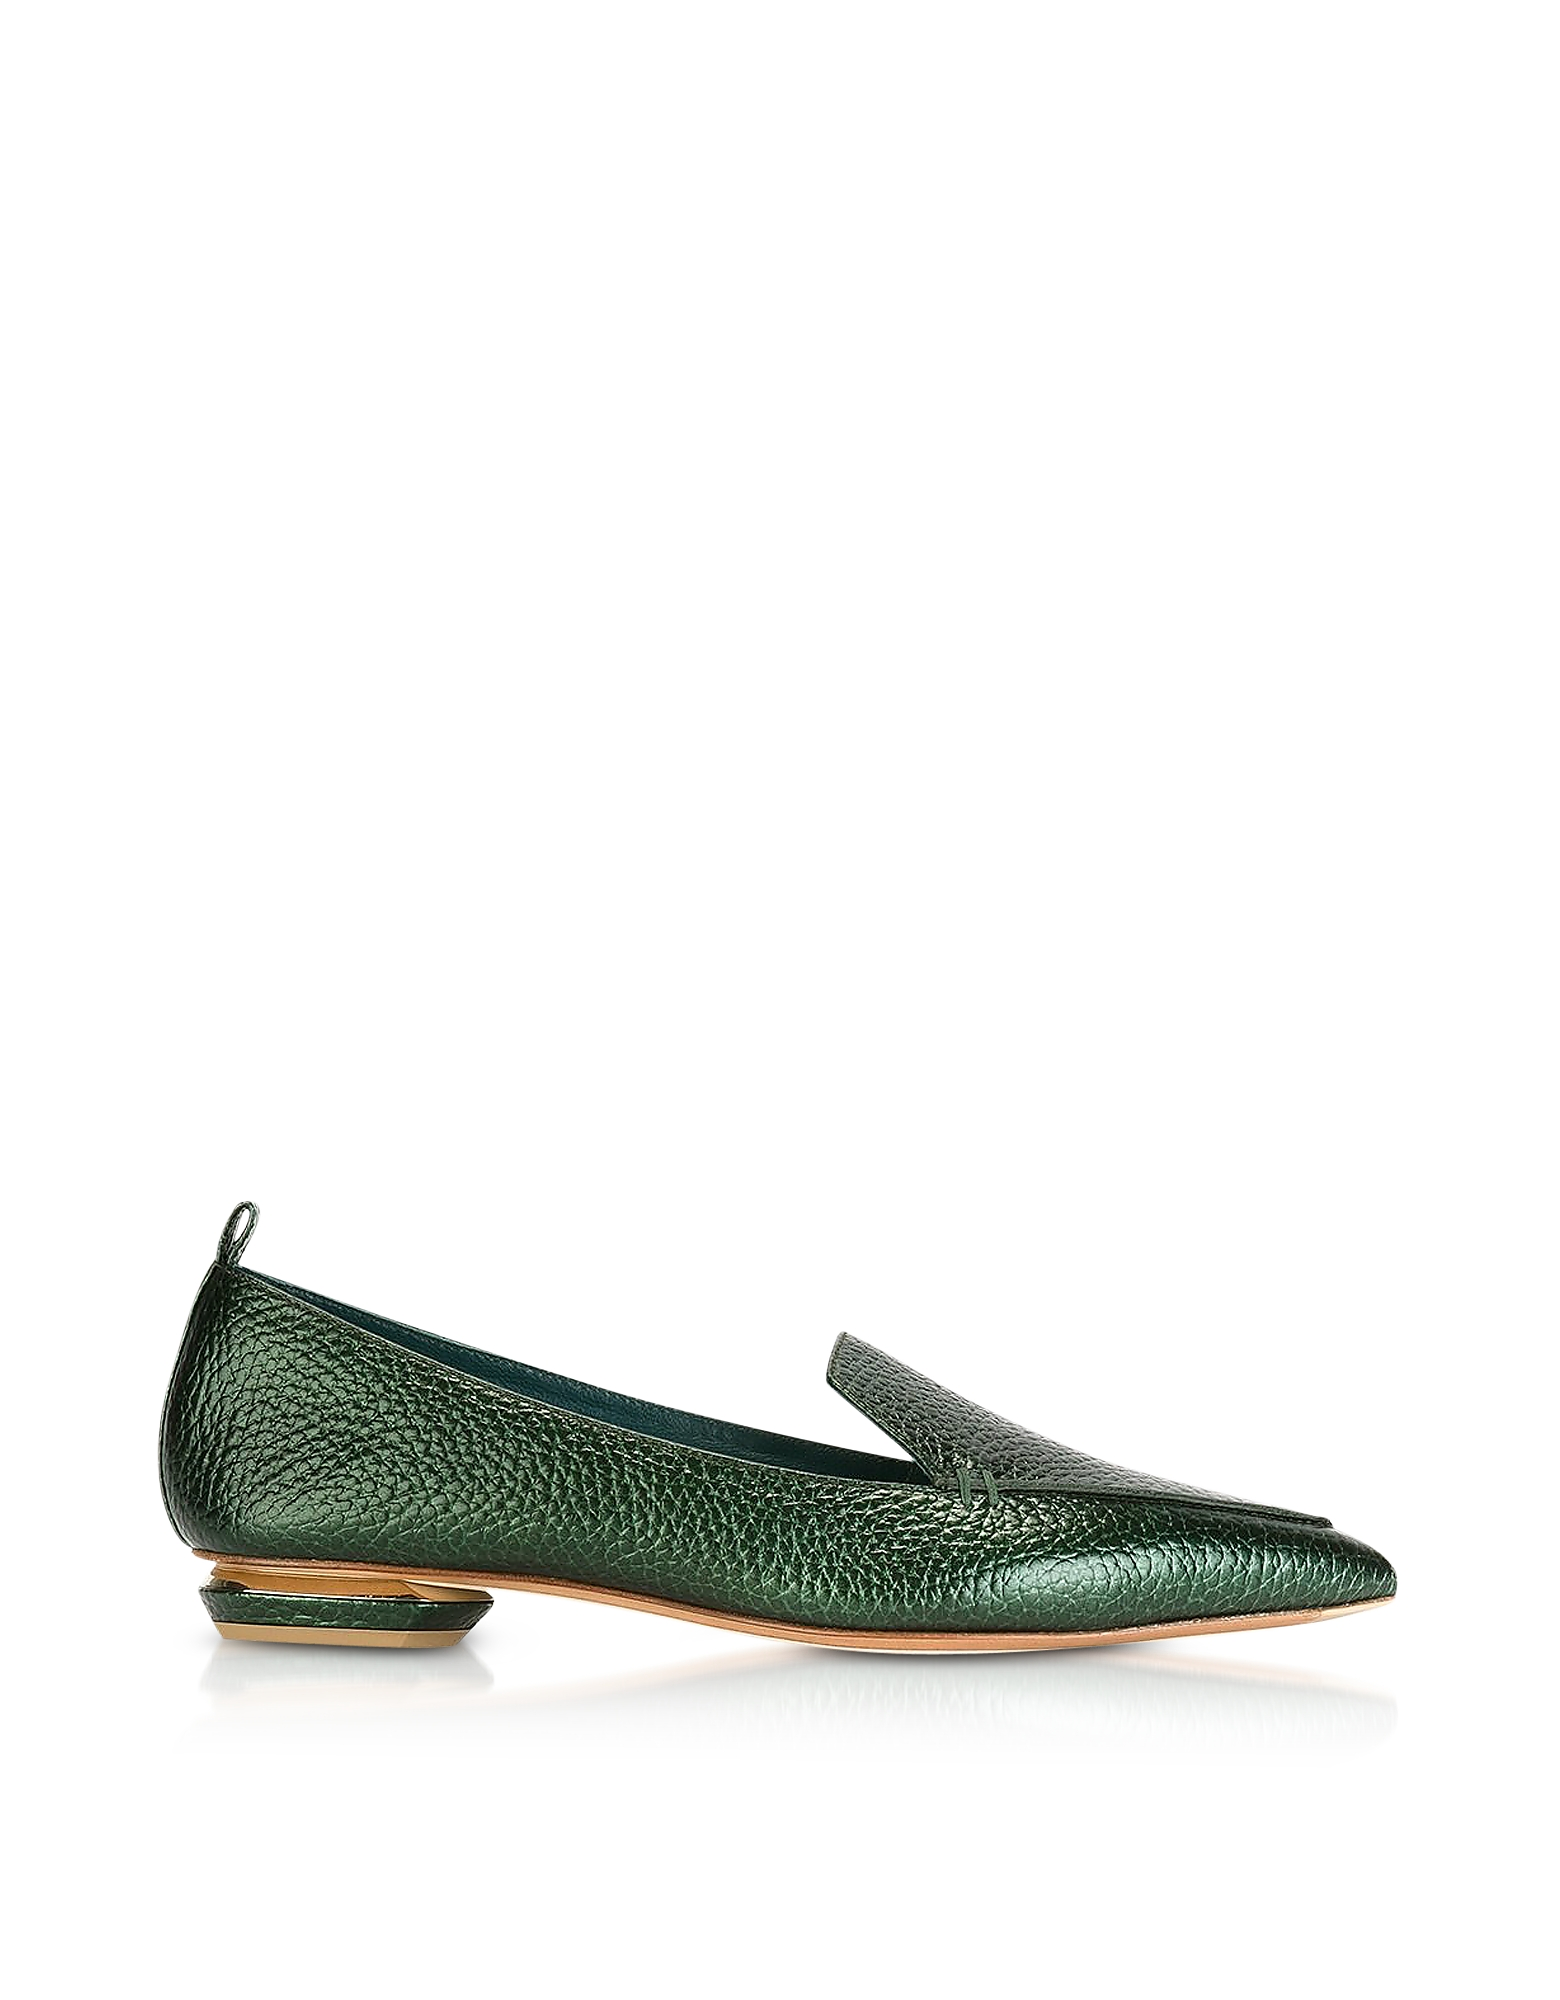 Nicholas Kirkwood Shoes, Beya Metallic Emerald Green Tumbled Leather Loafers